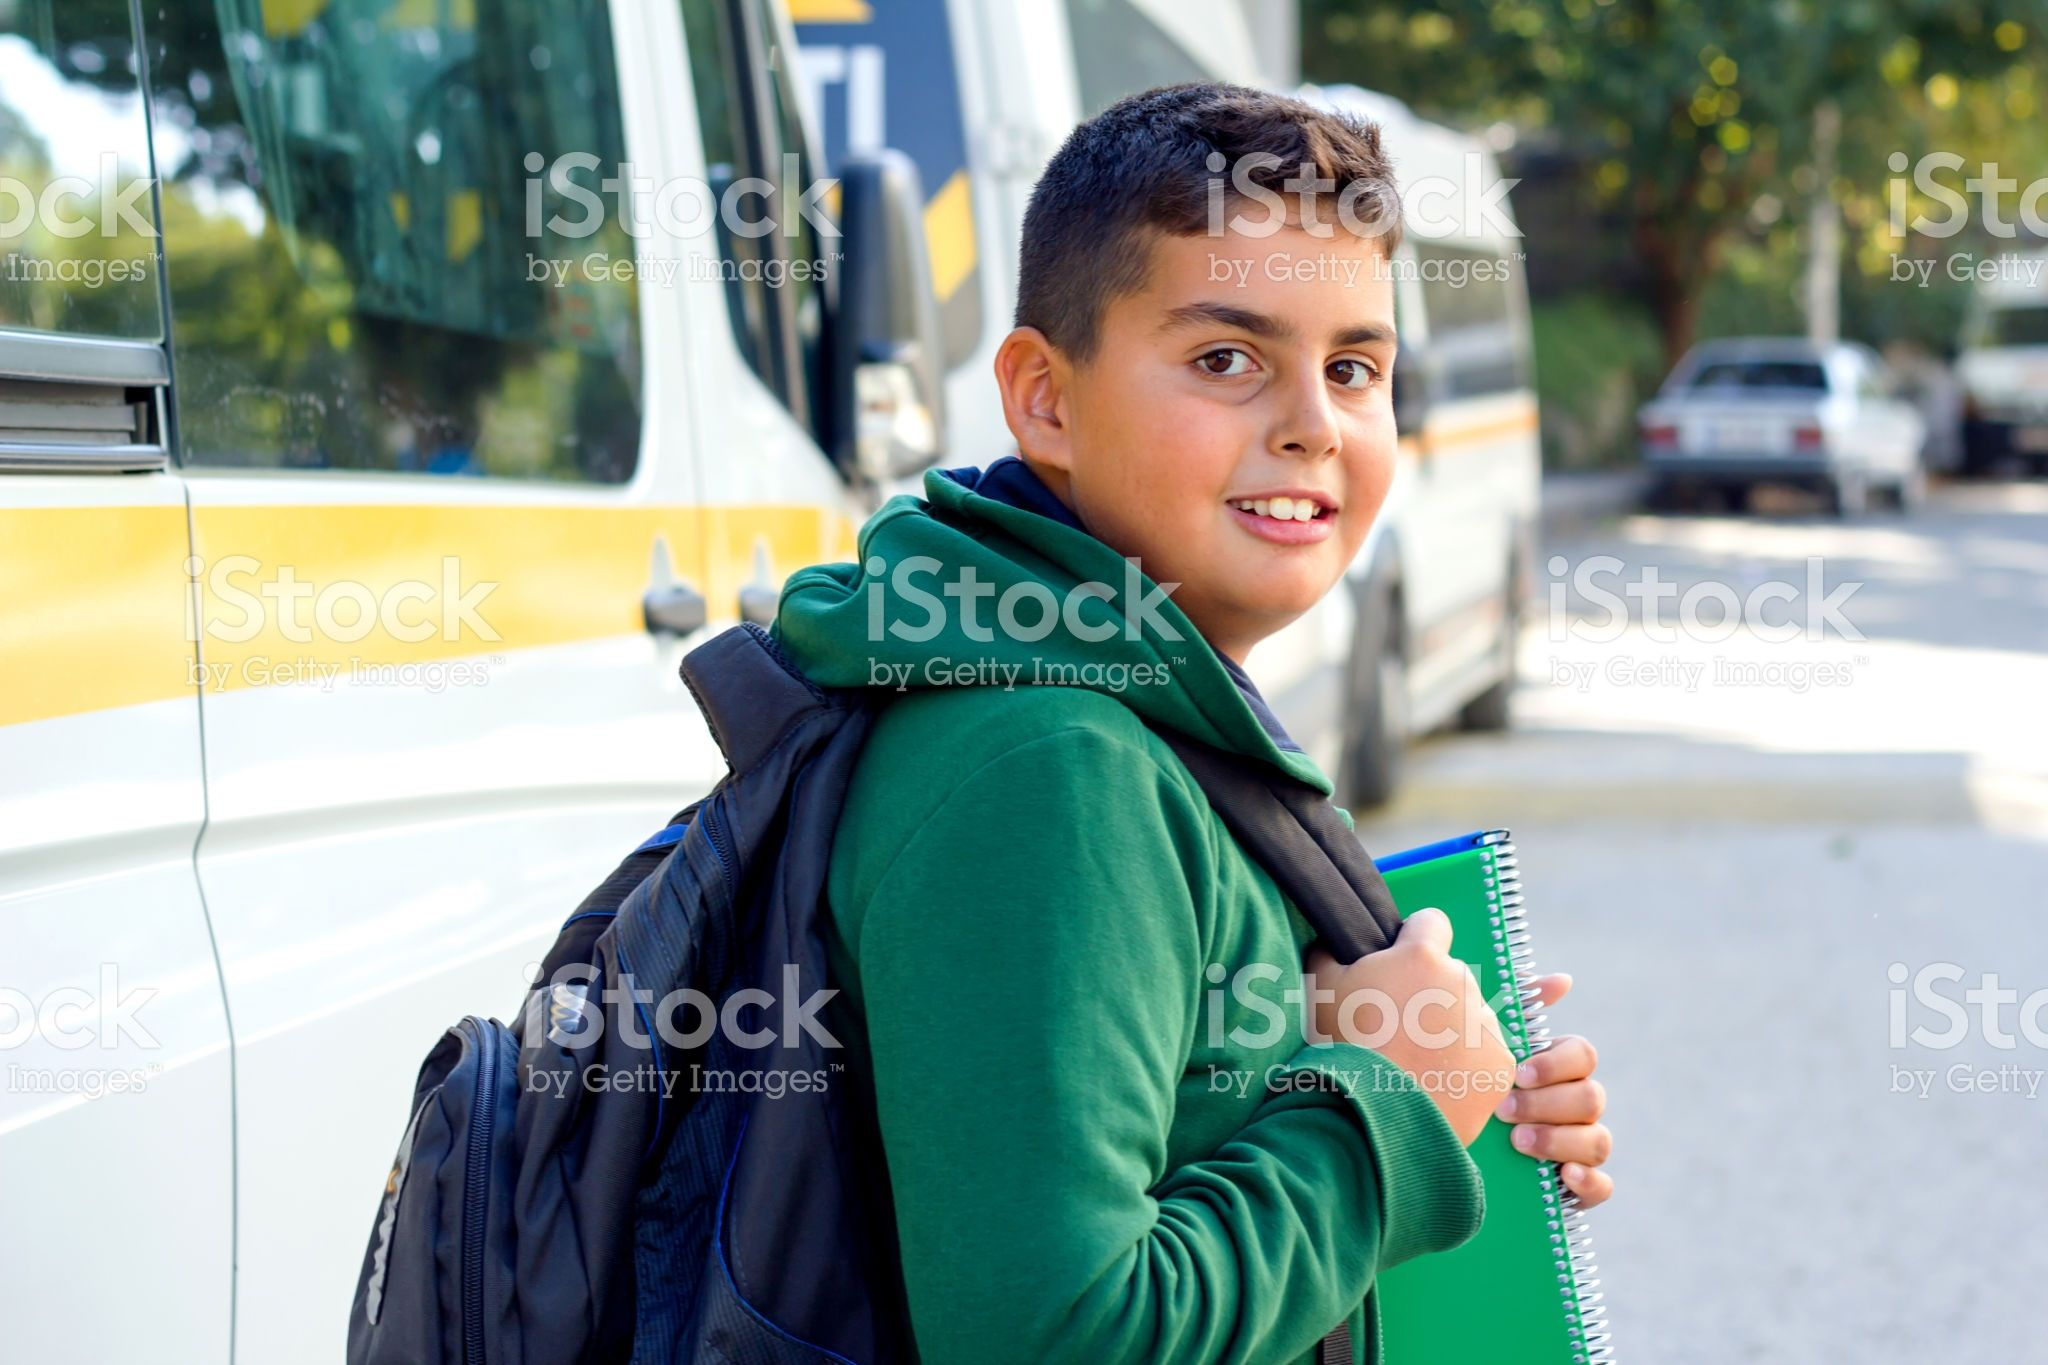 Boy Is Going To School royalty-free stock photo